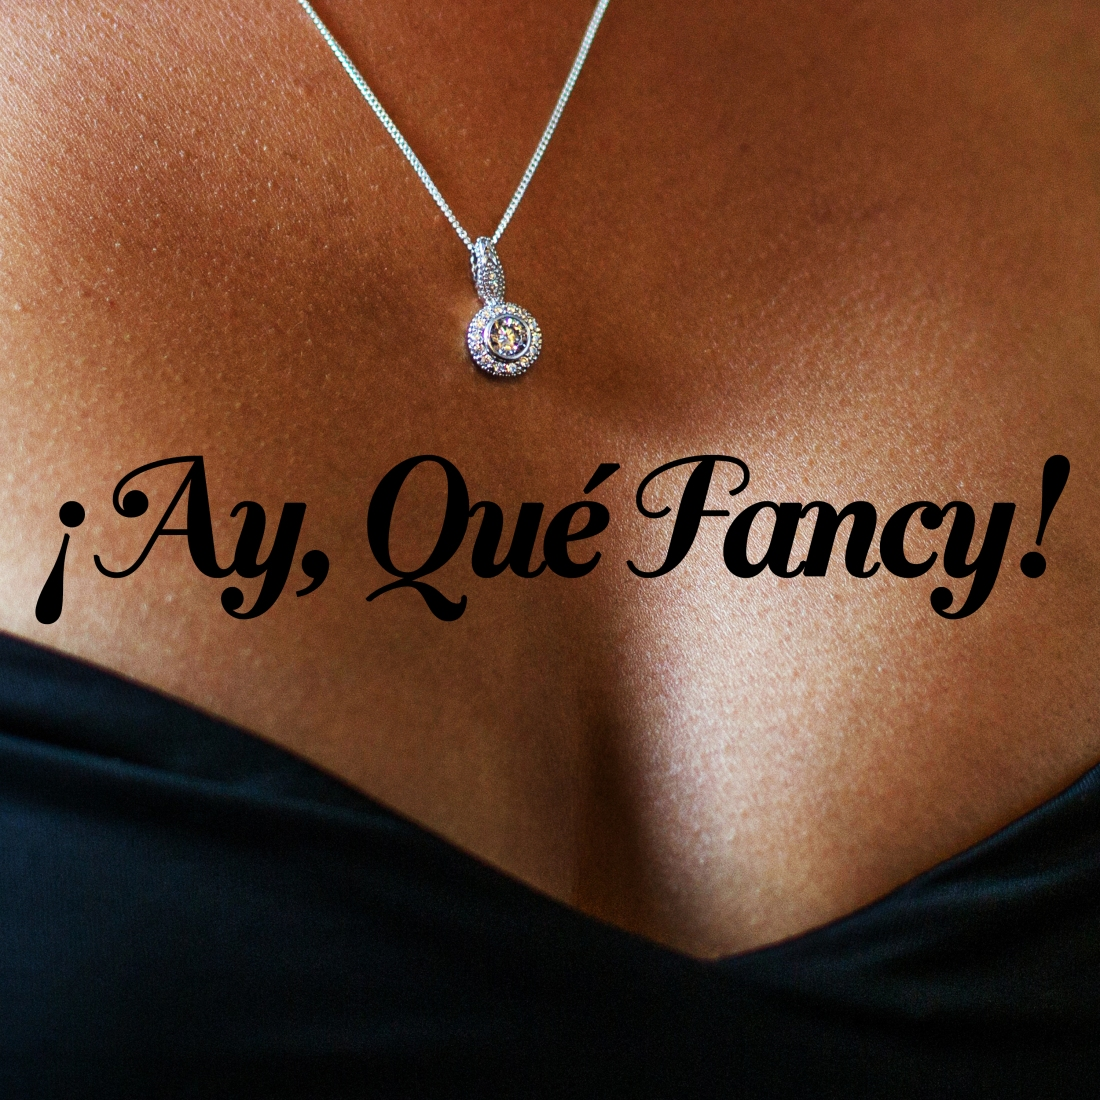 fancy-merryscript